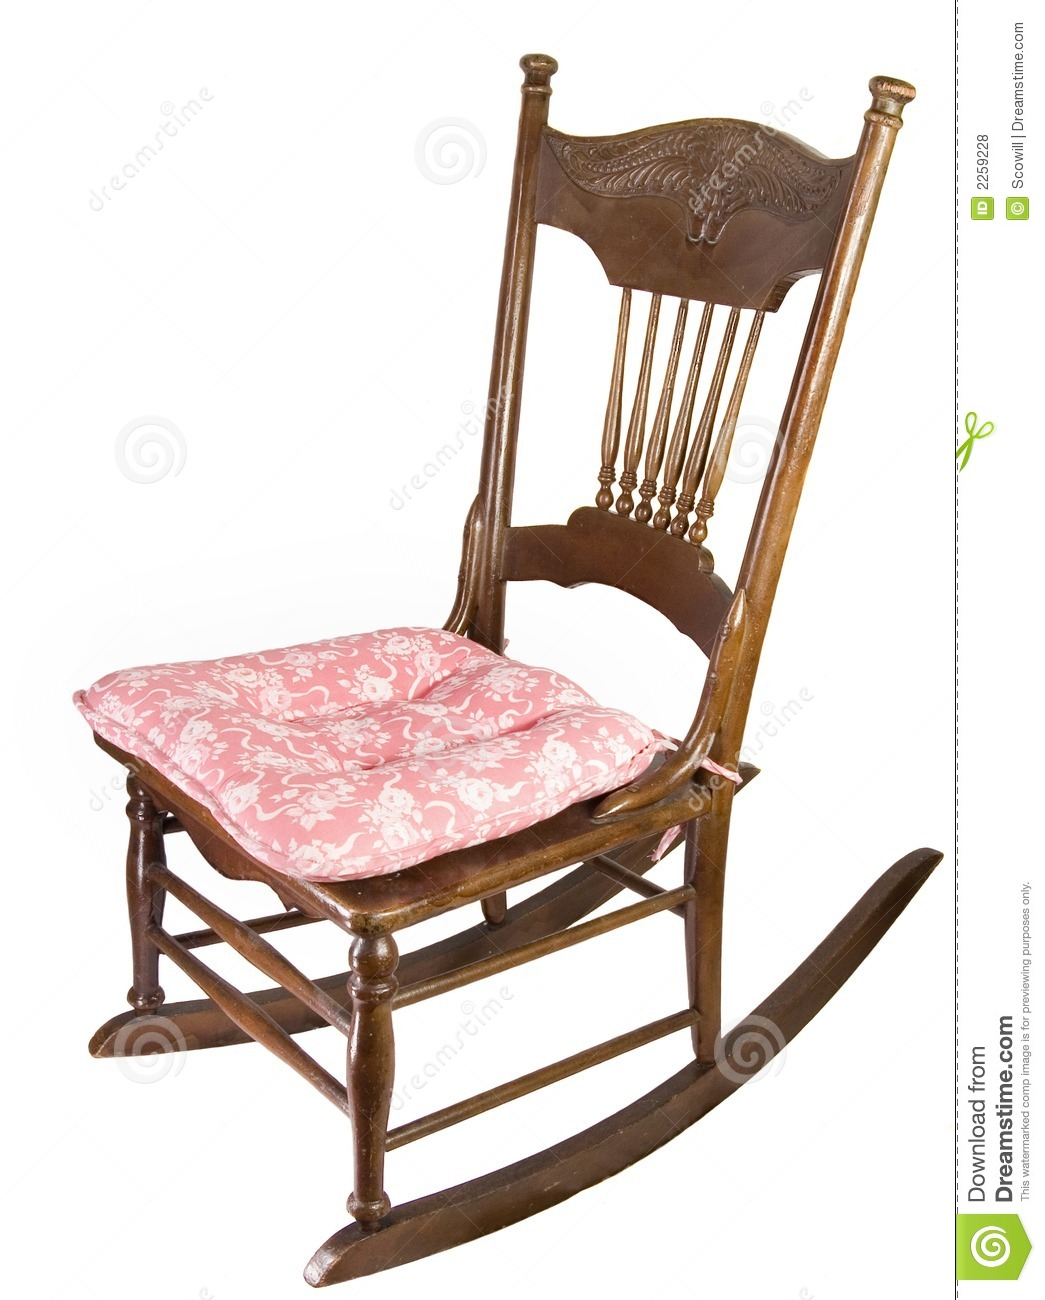 air sofa rocking chair with speaker cushions for sofas toronto armless royalty free stock photos image